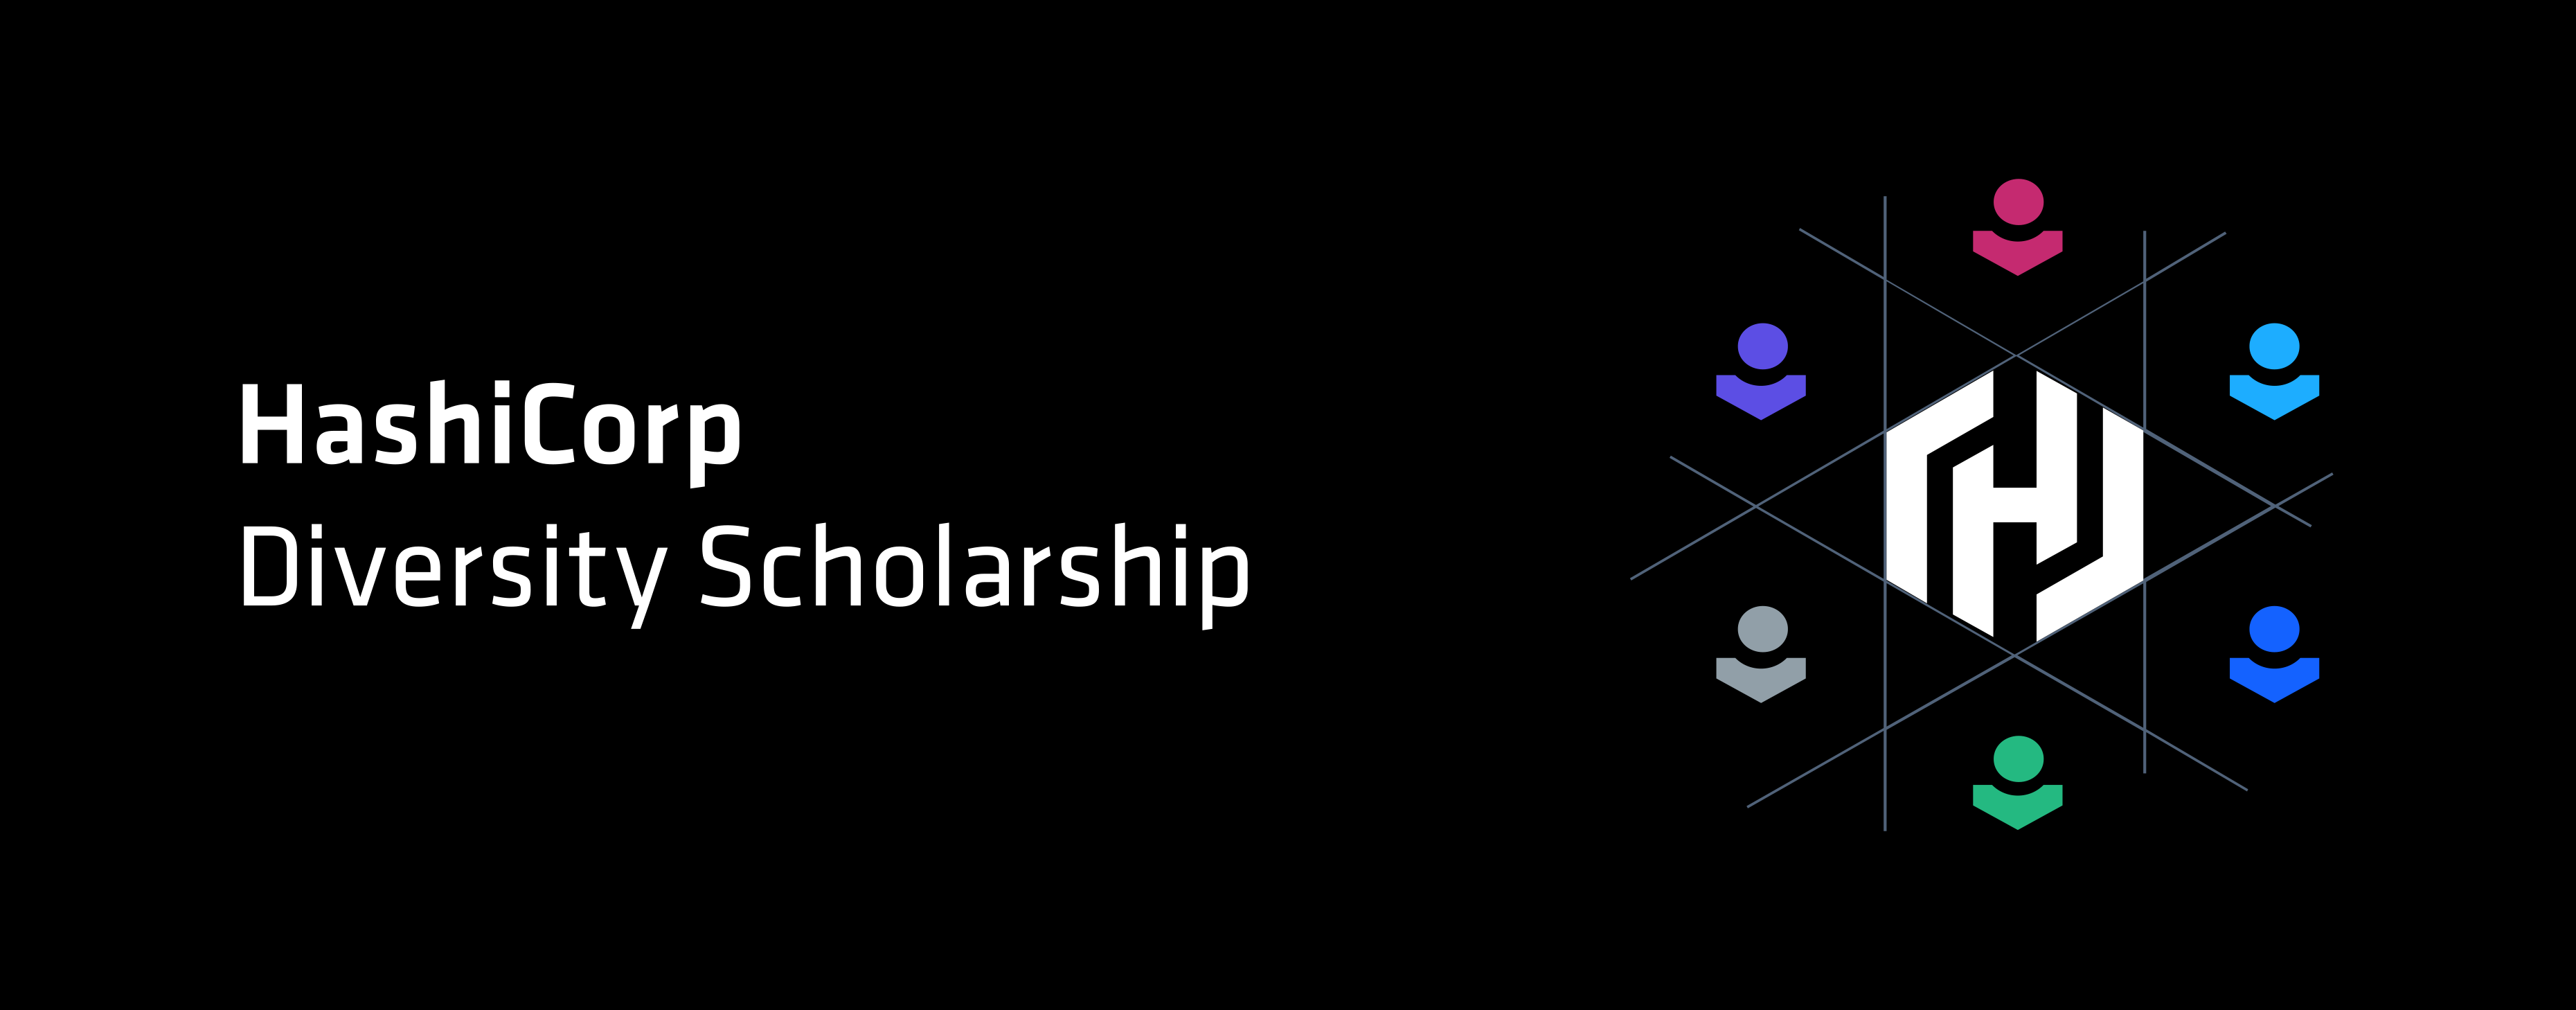 Announcing HashiCorp Diversity Scholarship Program